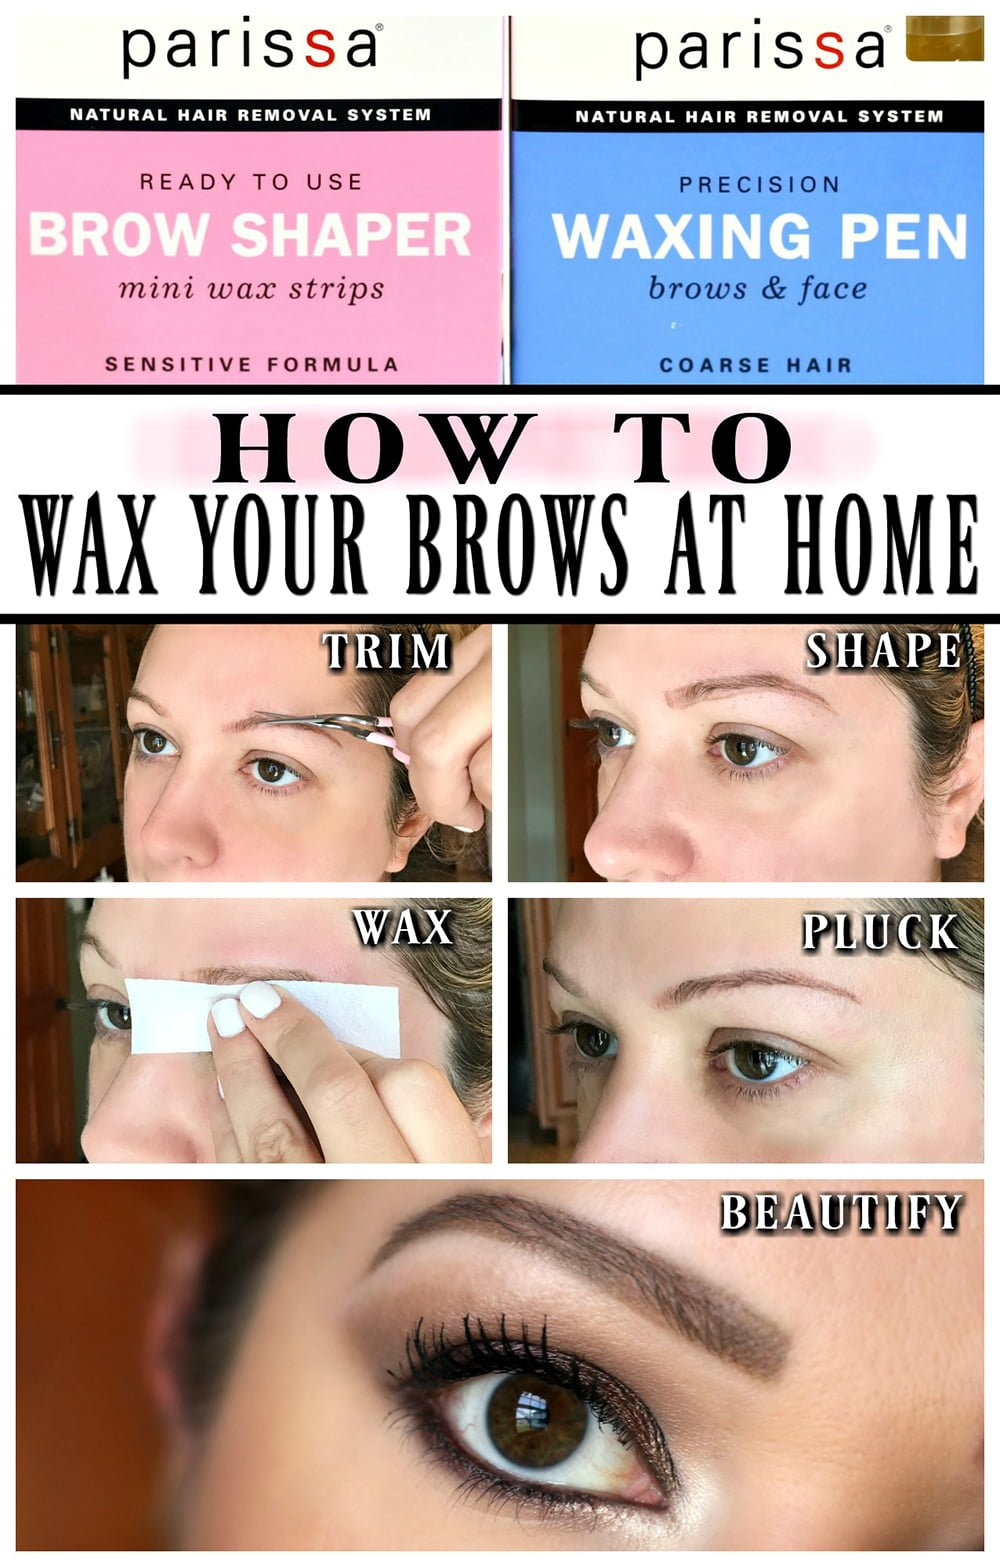 How To Wax Your Eyebrows At Home Diy Brow Tutorial Shaping Parissa